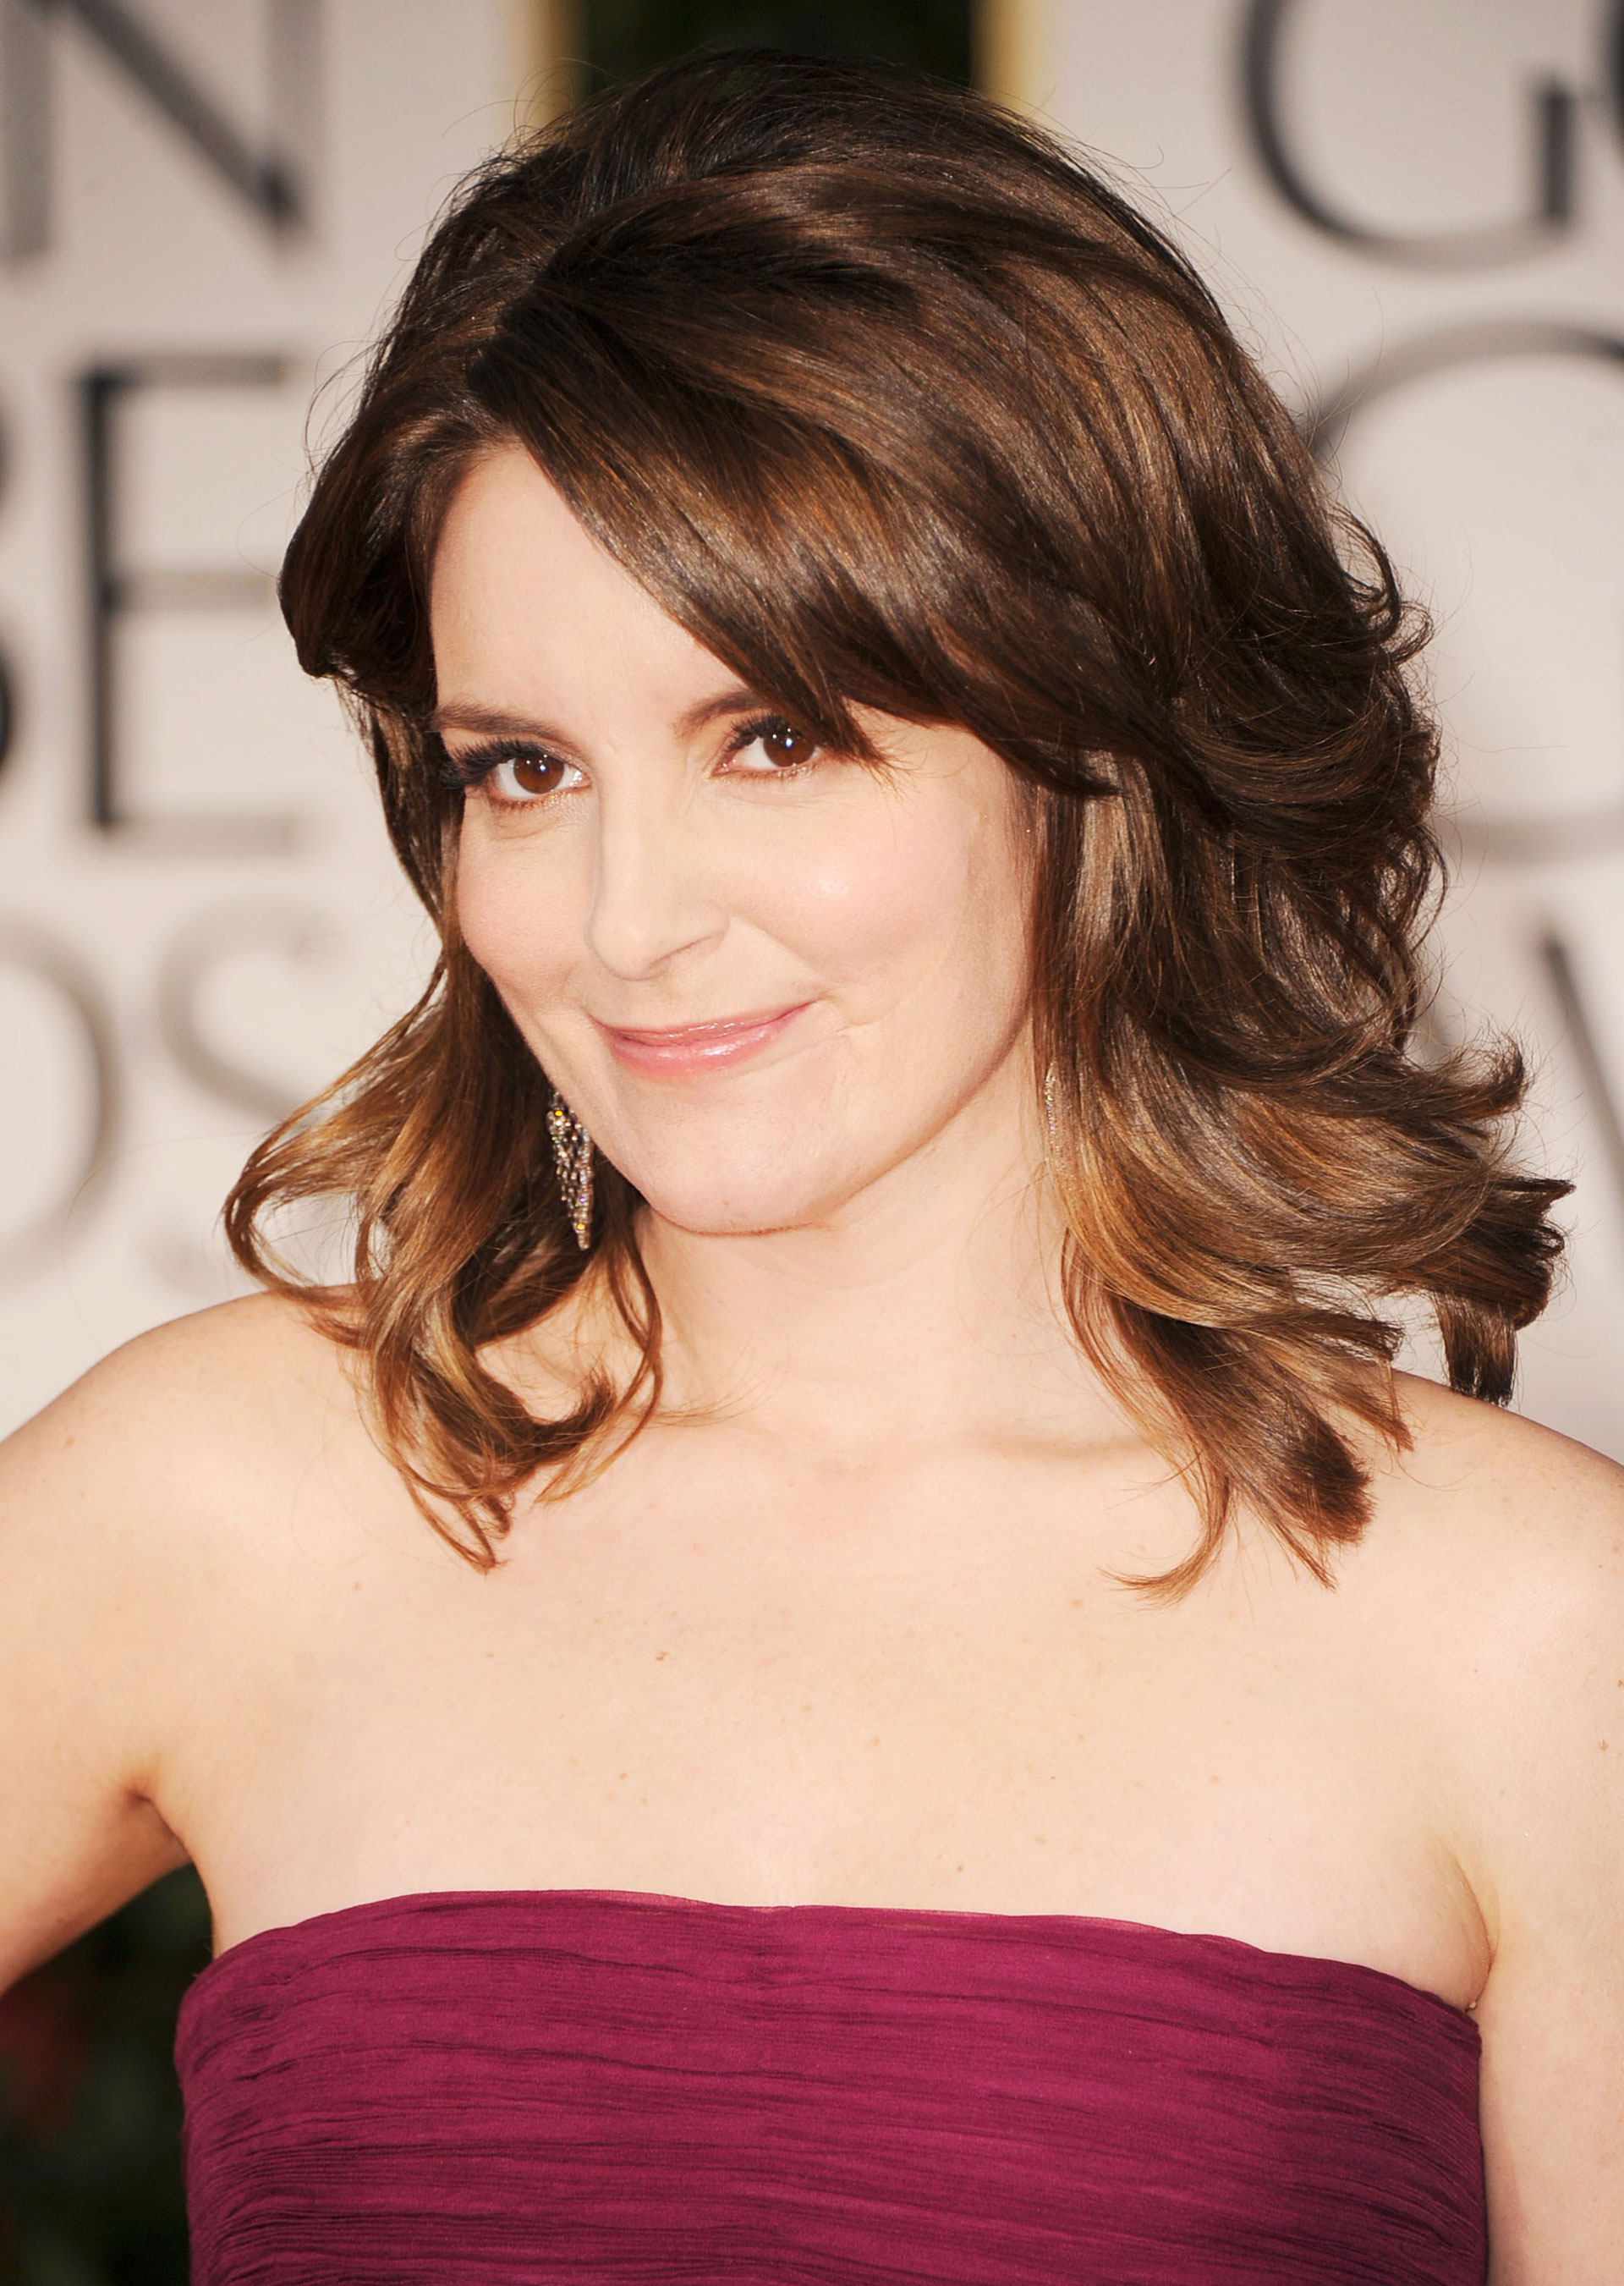 Superb 12 Best Hairstyles Over 40 Celeb Hair Over 40 Hairstyles For Women Draintrainus